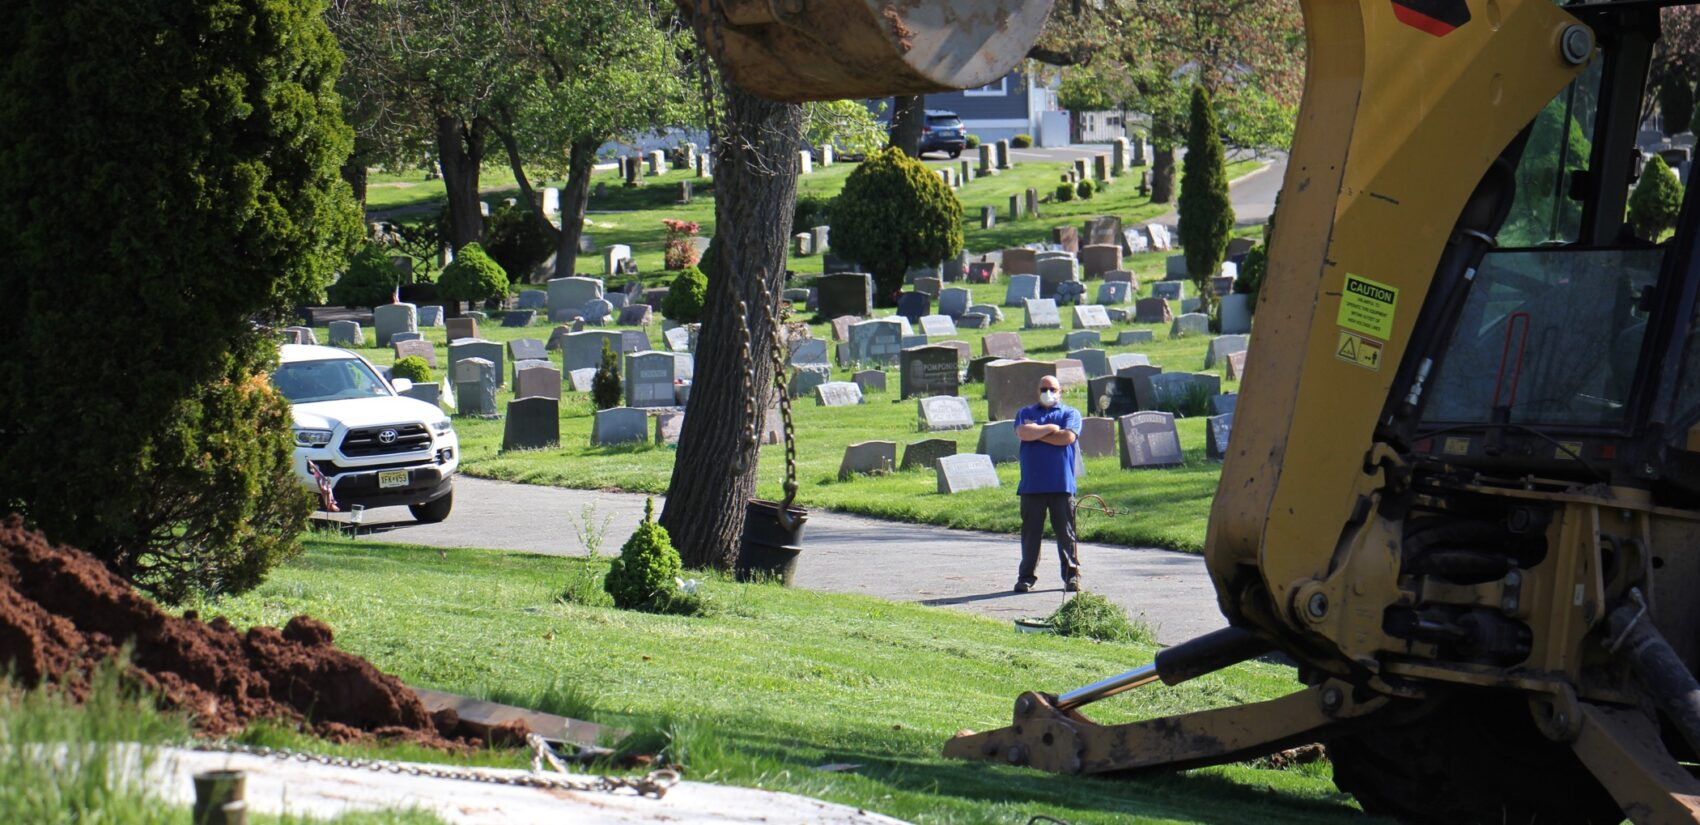 Jeff Dodgson, who oversees the grounds crew at Glendale Cemetery in Bloomfield, N.J., watches as a grave is prepared. (Emma Lee/WHYY)